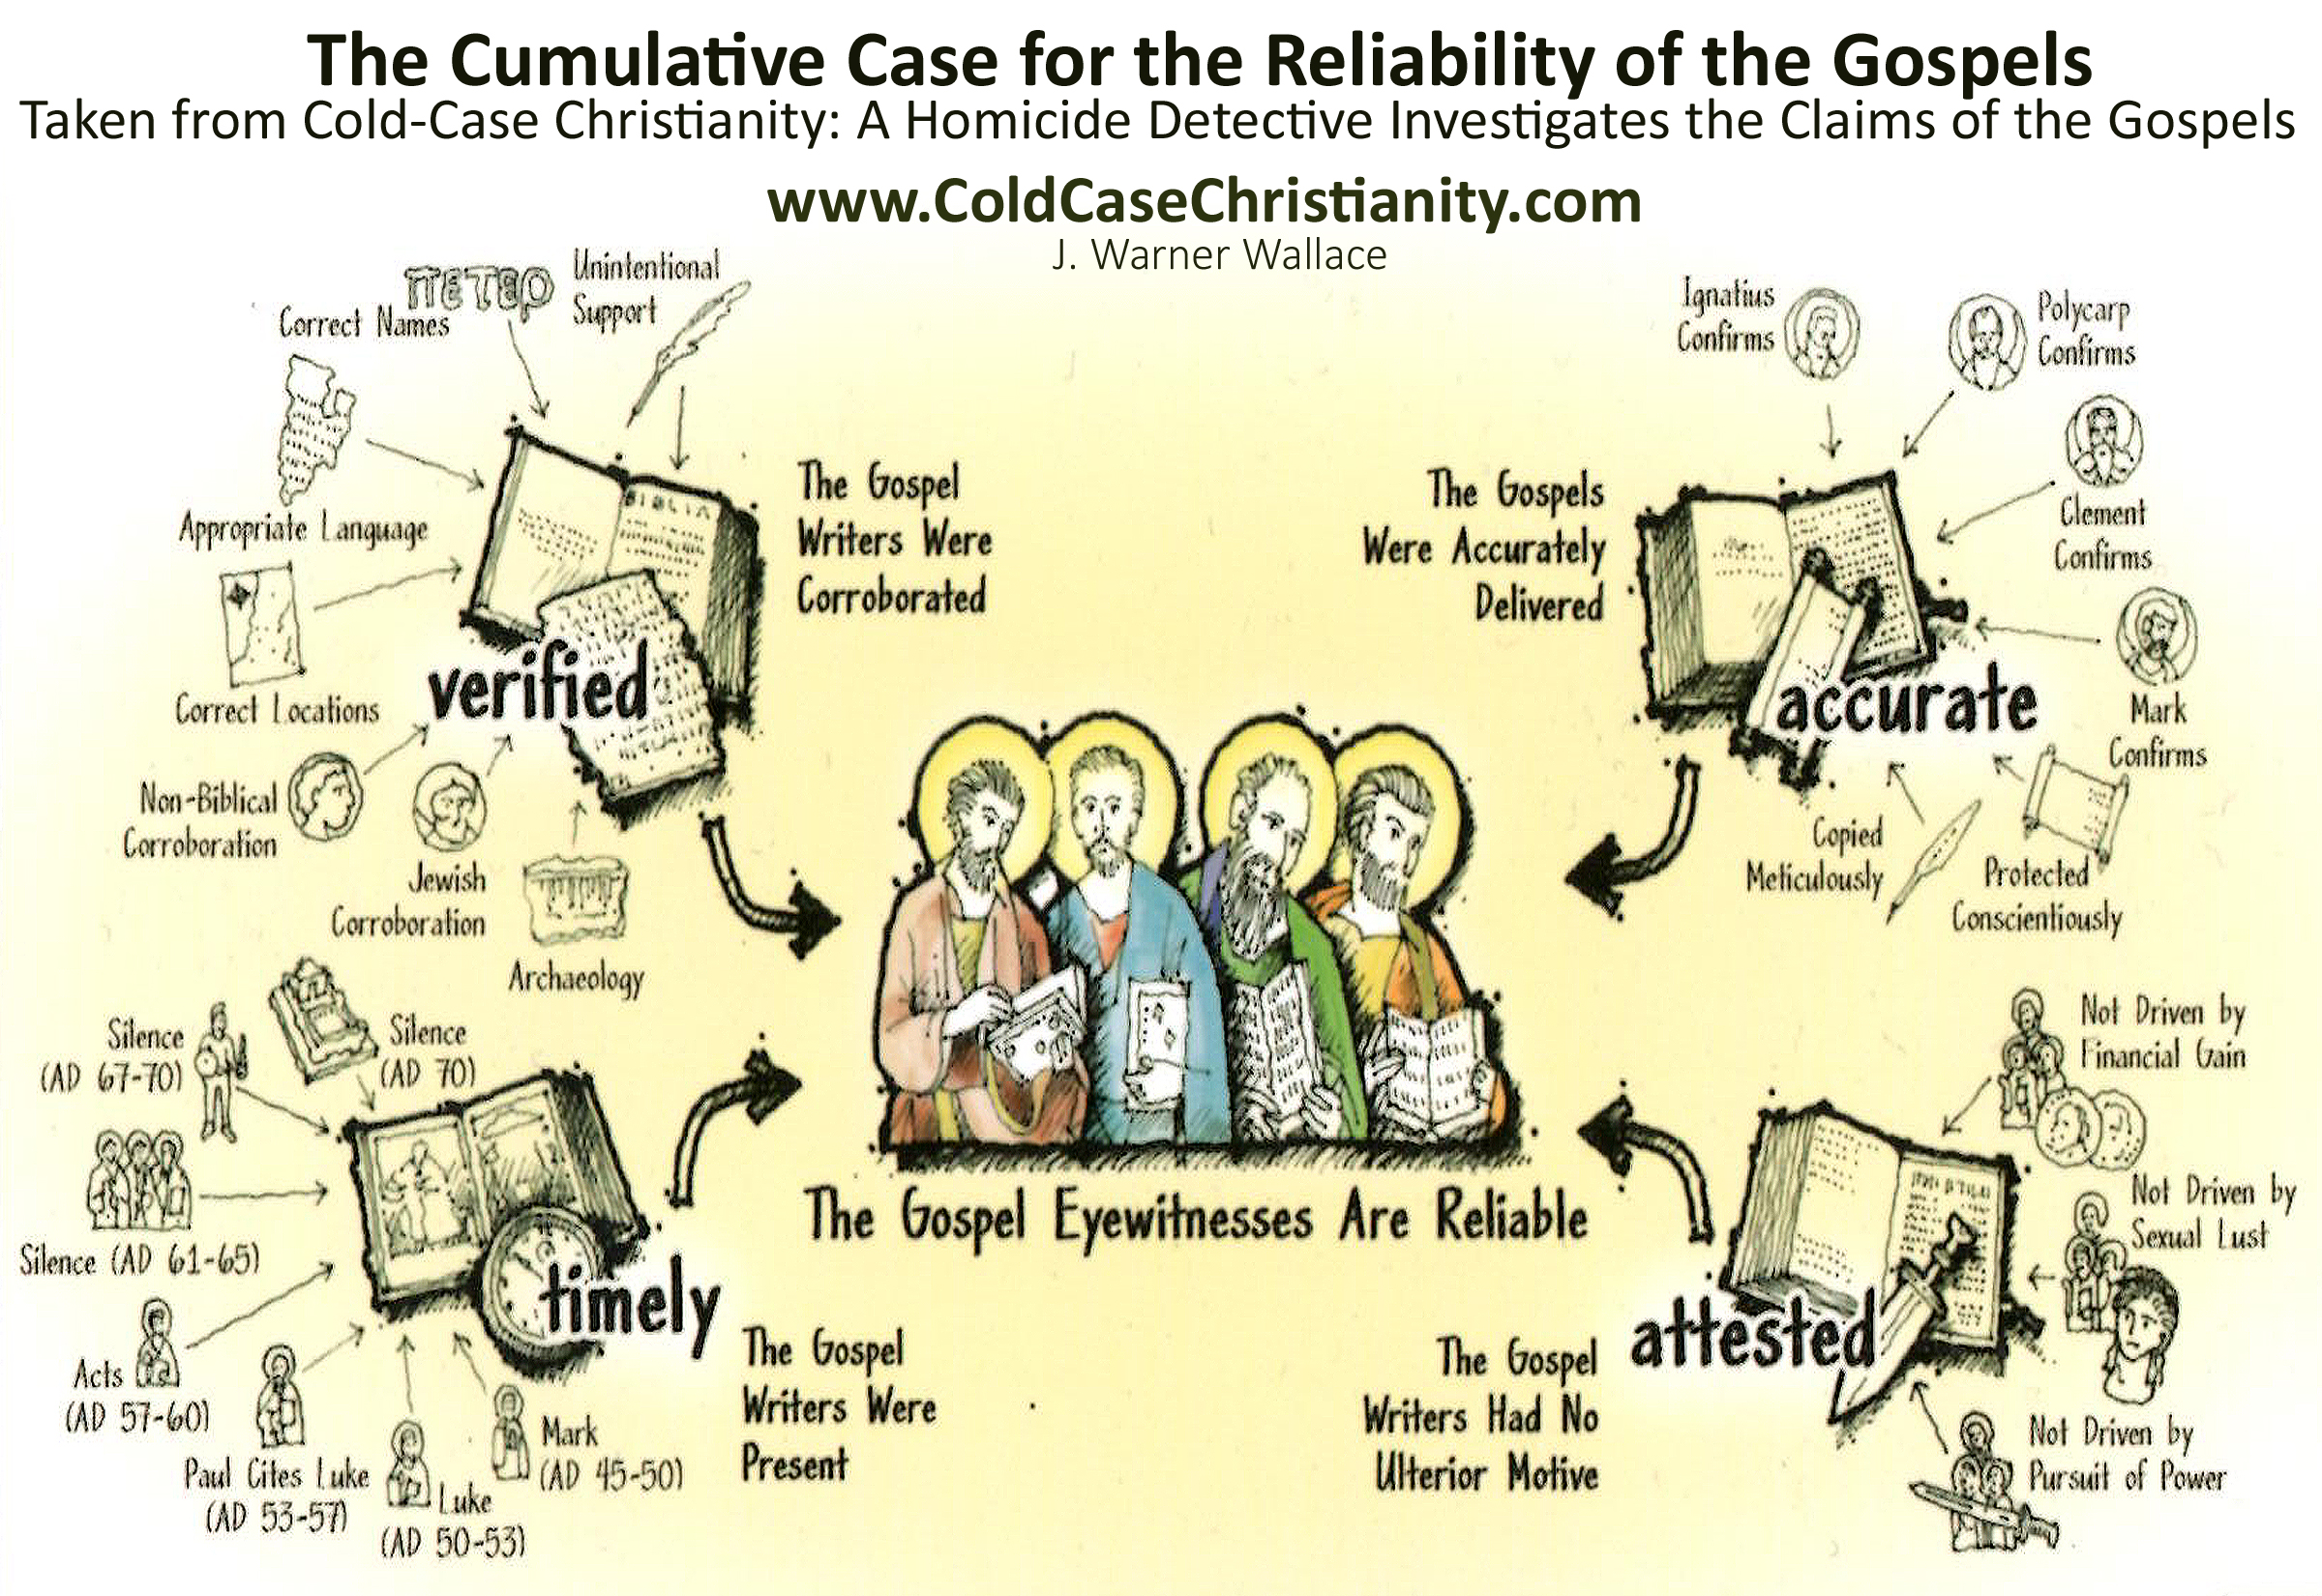 an analysis of the psychology of eyewitness accounts Download article in printable (pdf) form the problem with eyewitness testimony a talk by barbara tversky, professor of psychology and george fisher, professor of law.